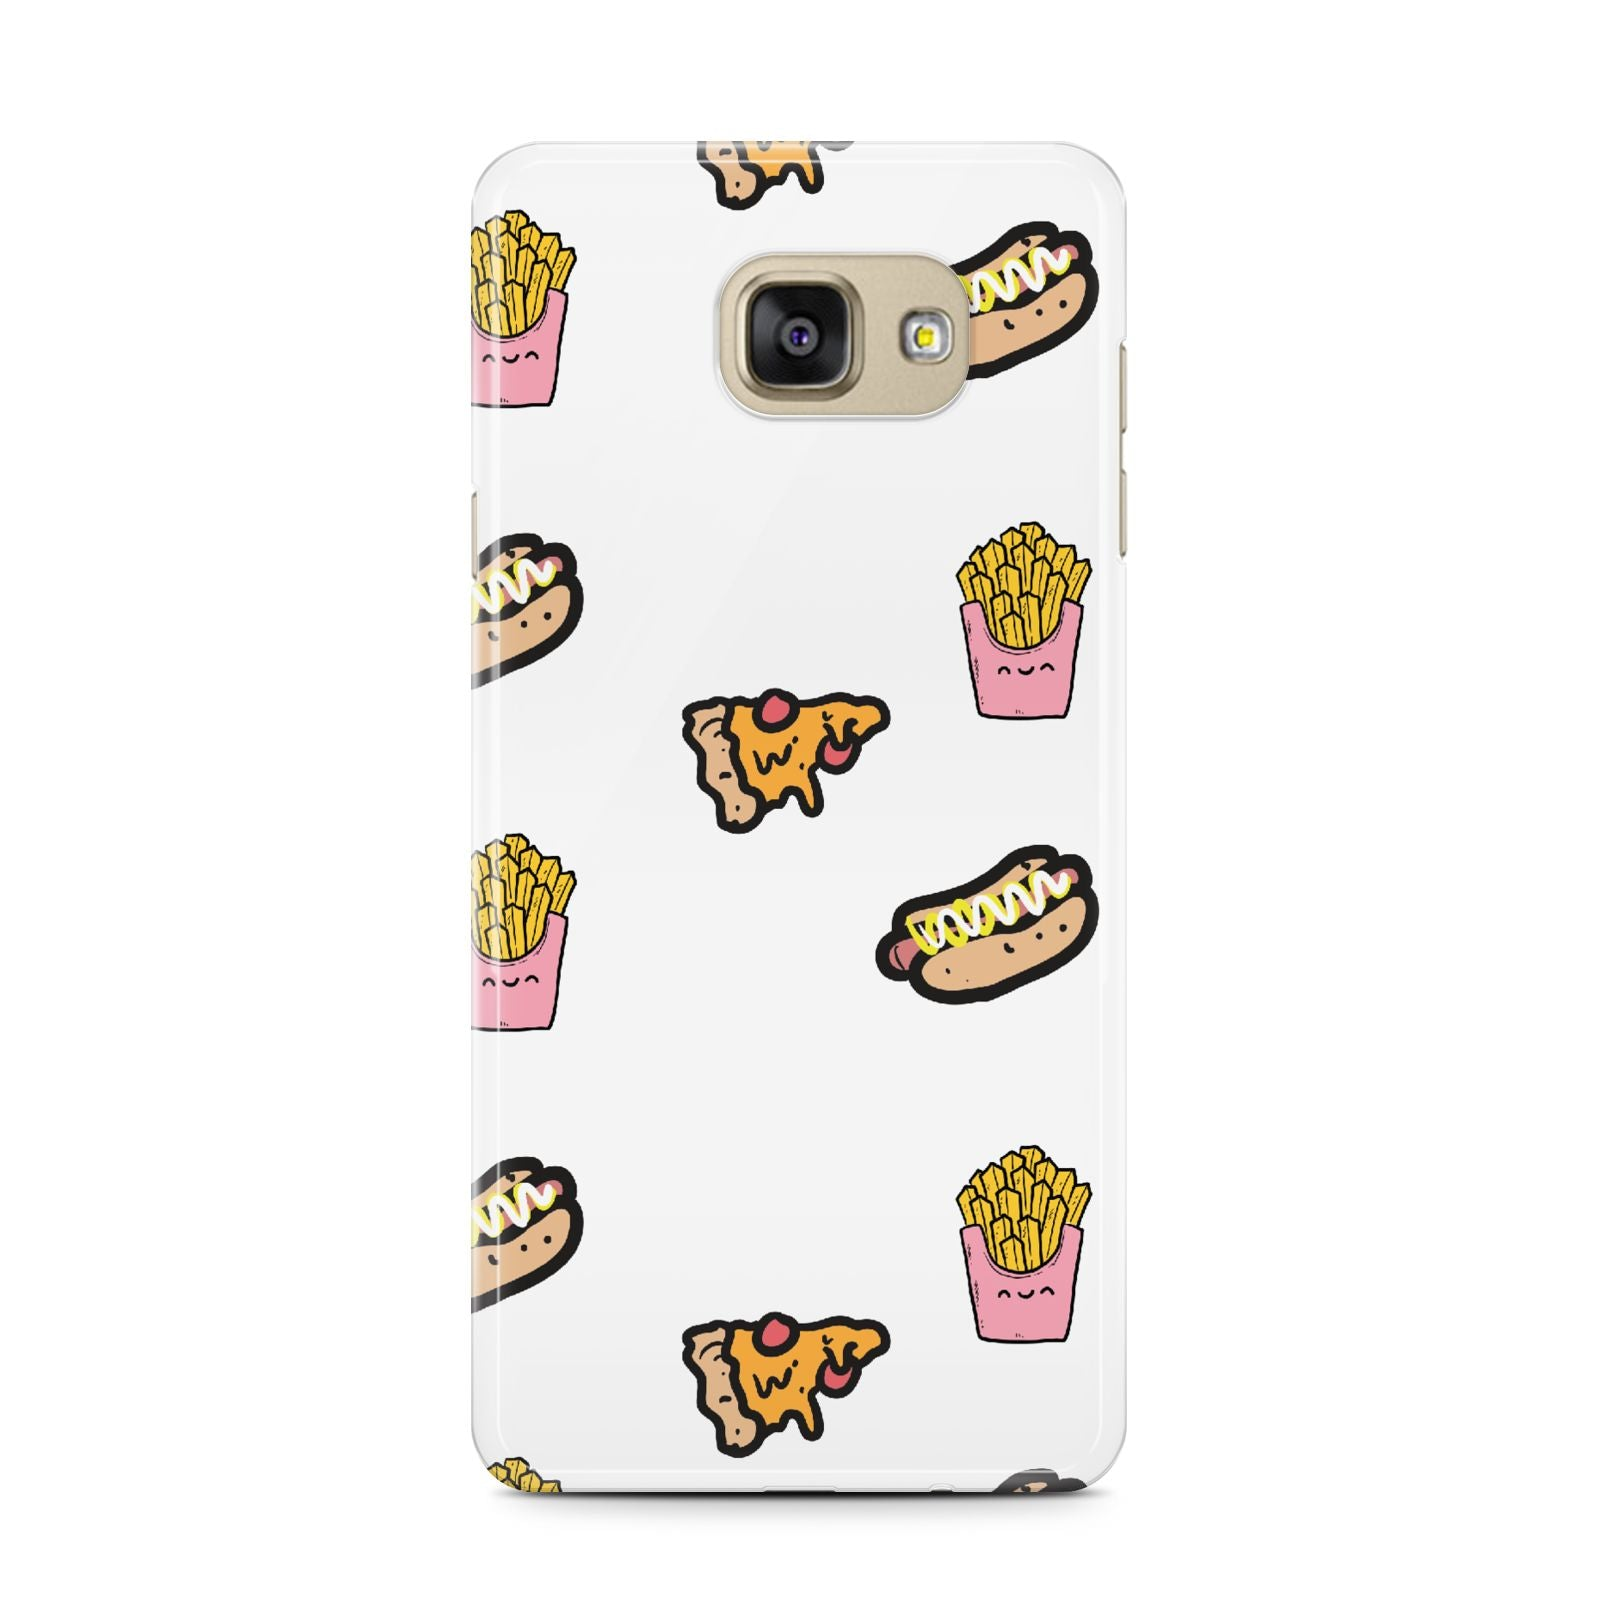 Fries Pizza Hot Dog Samsung Galaxy A7 2016 Case on gold phone